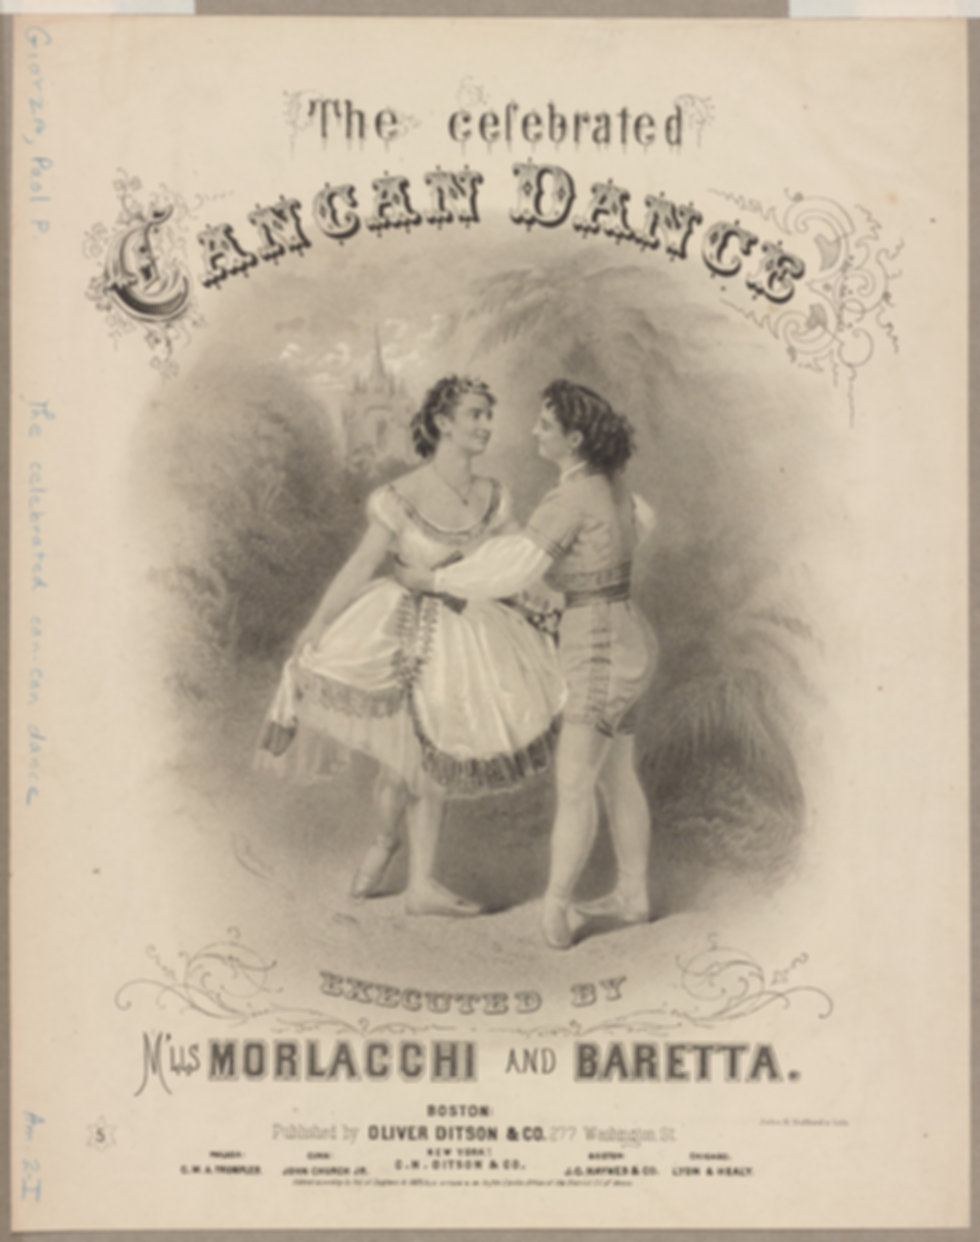 The celebrated cancan dance executed by M'lls Morlacchi and Baretta